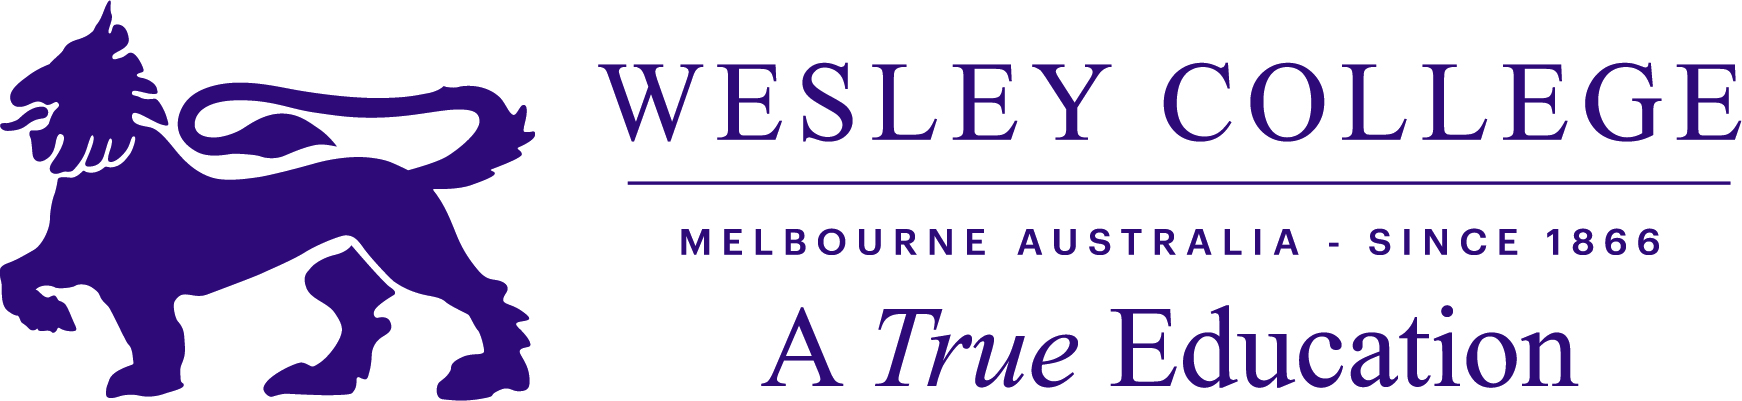 Image result for wesley college melbourne logo